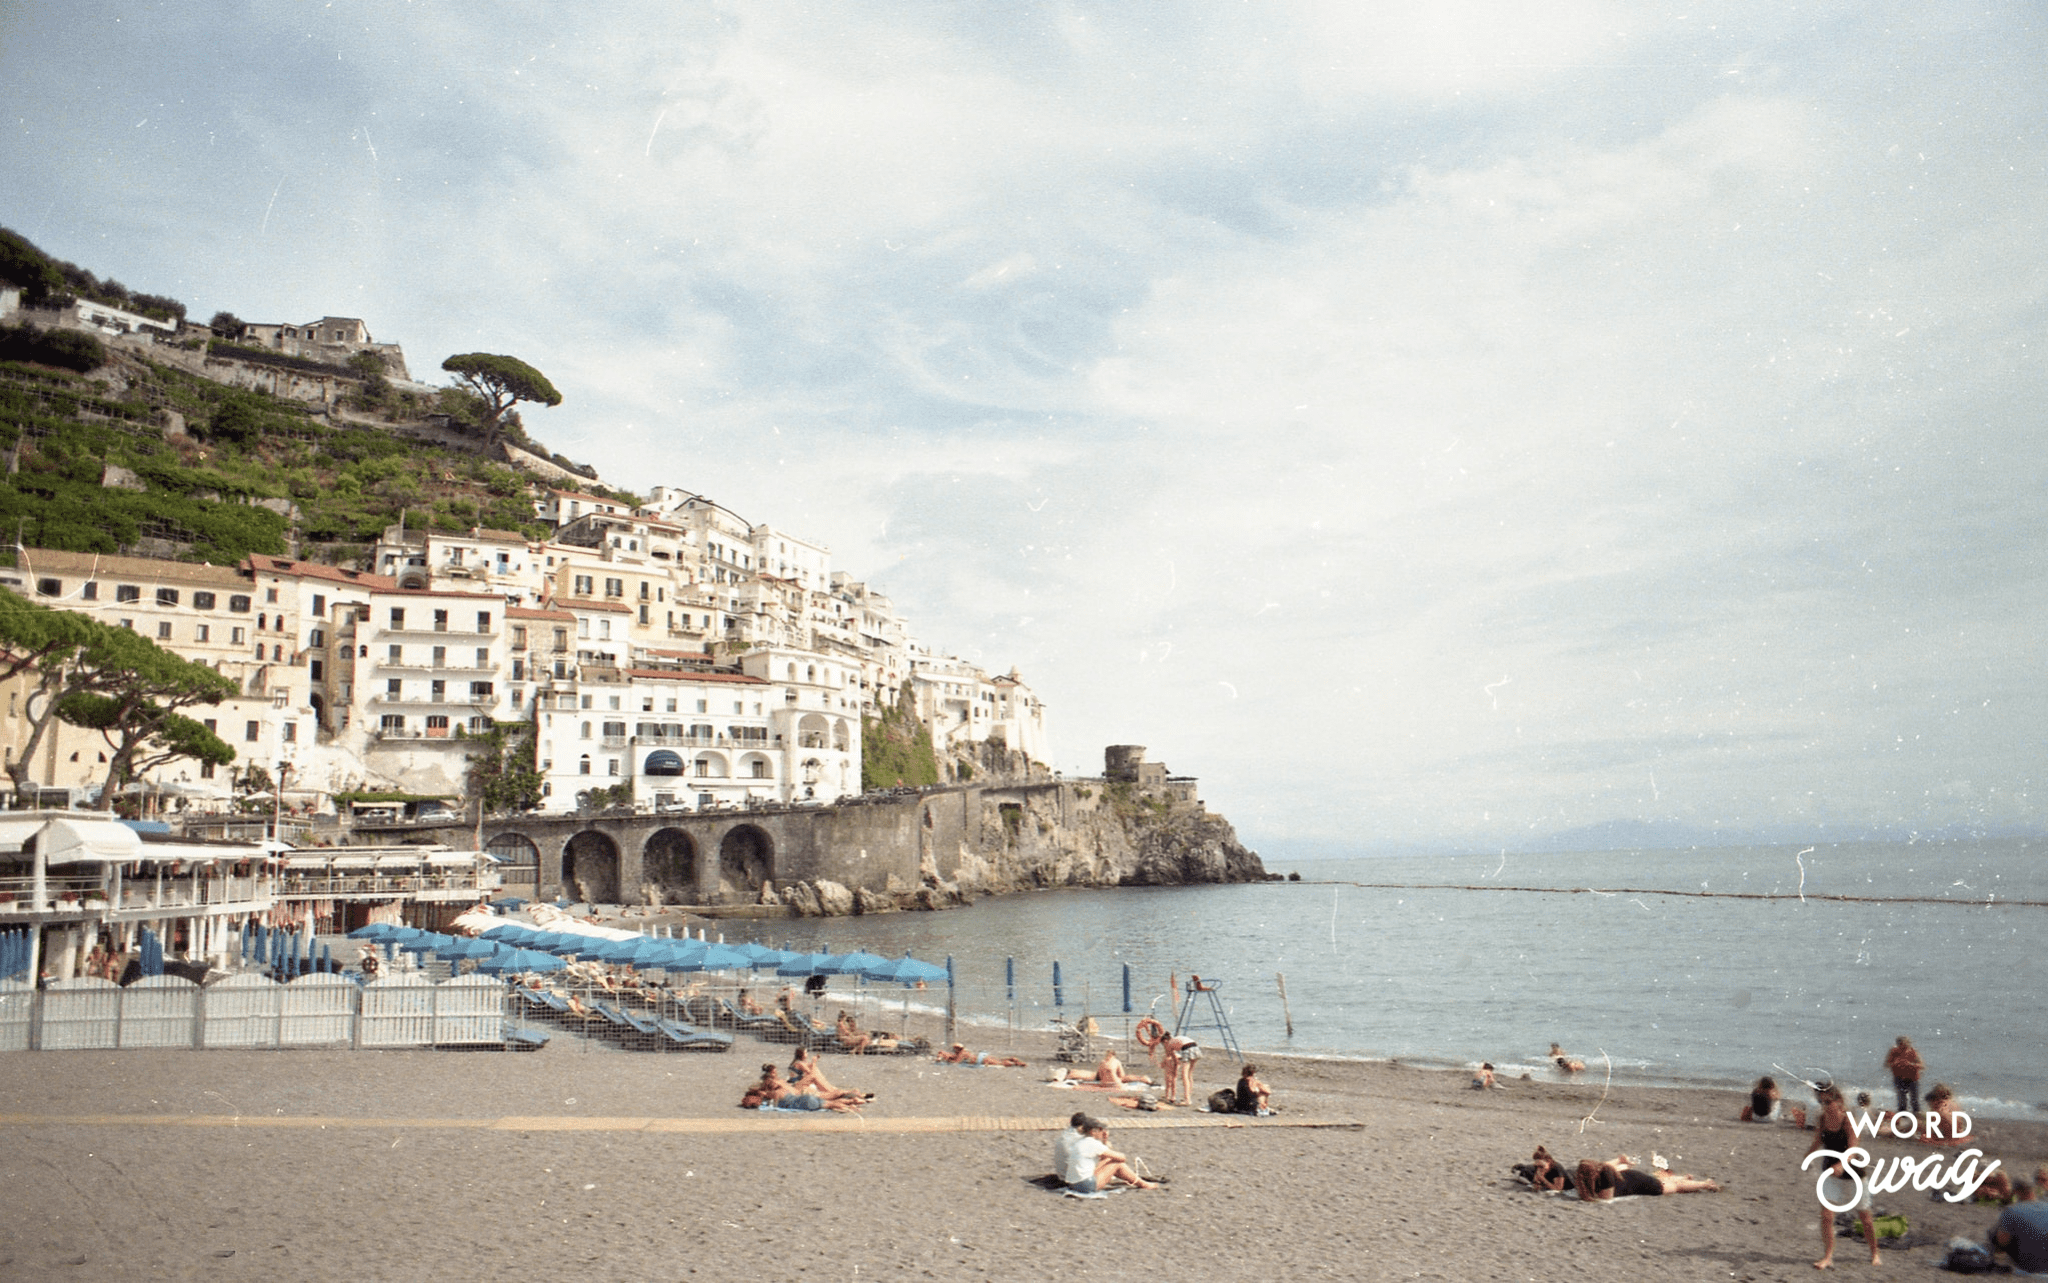 plan a trip to the Amalfi Coast